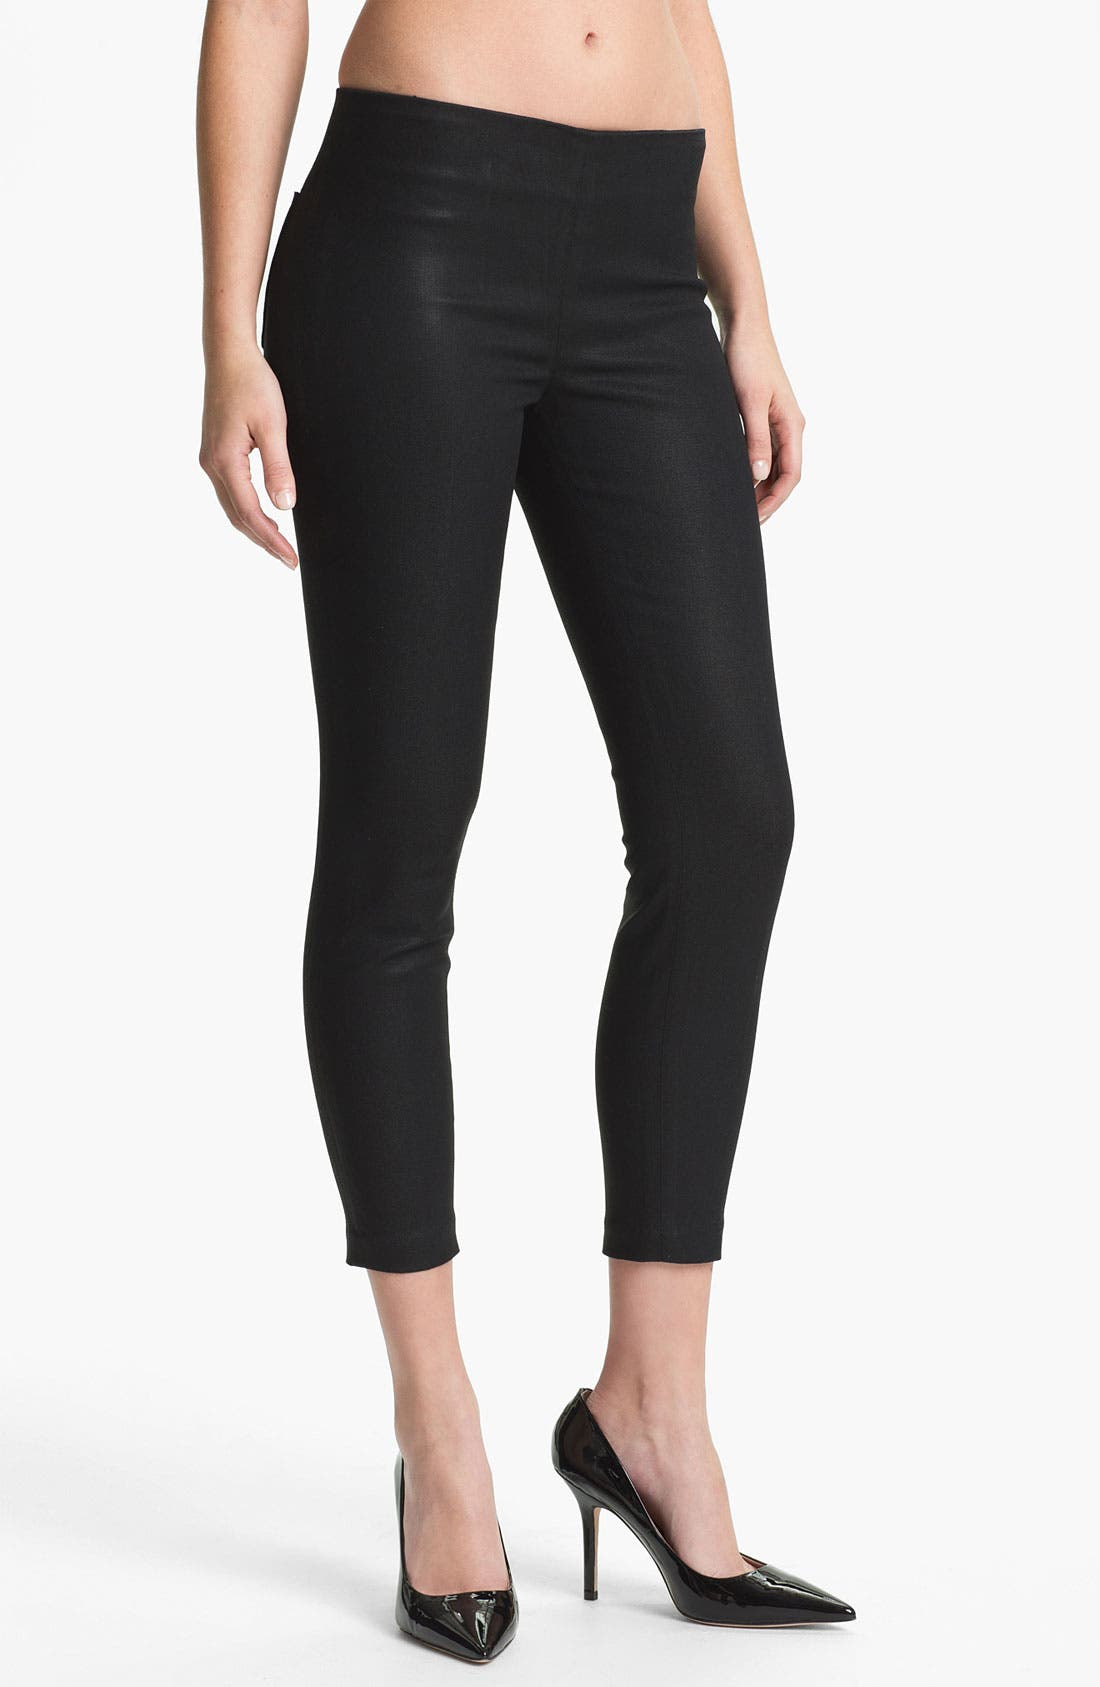 Alternate Image 1 Selected - J Brand Stretch Capri Leggings (Coated Black)